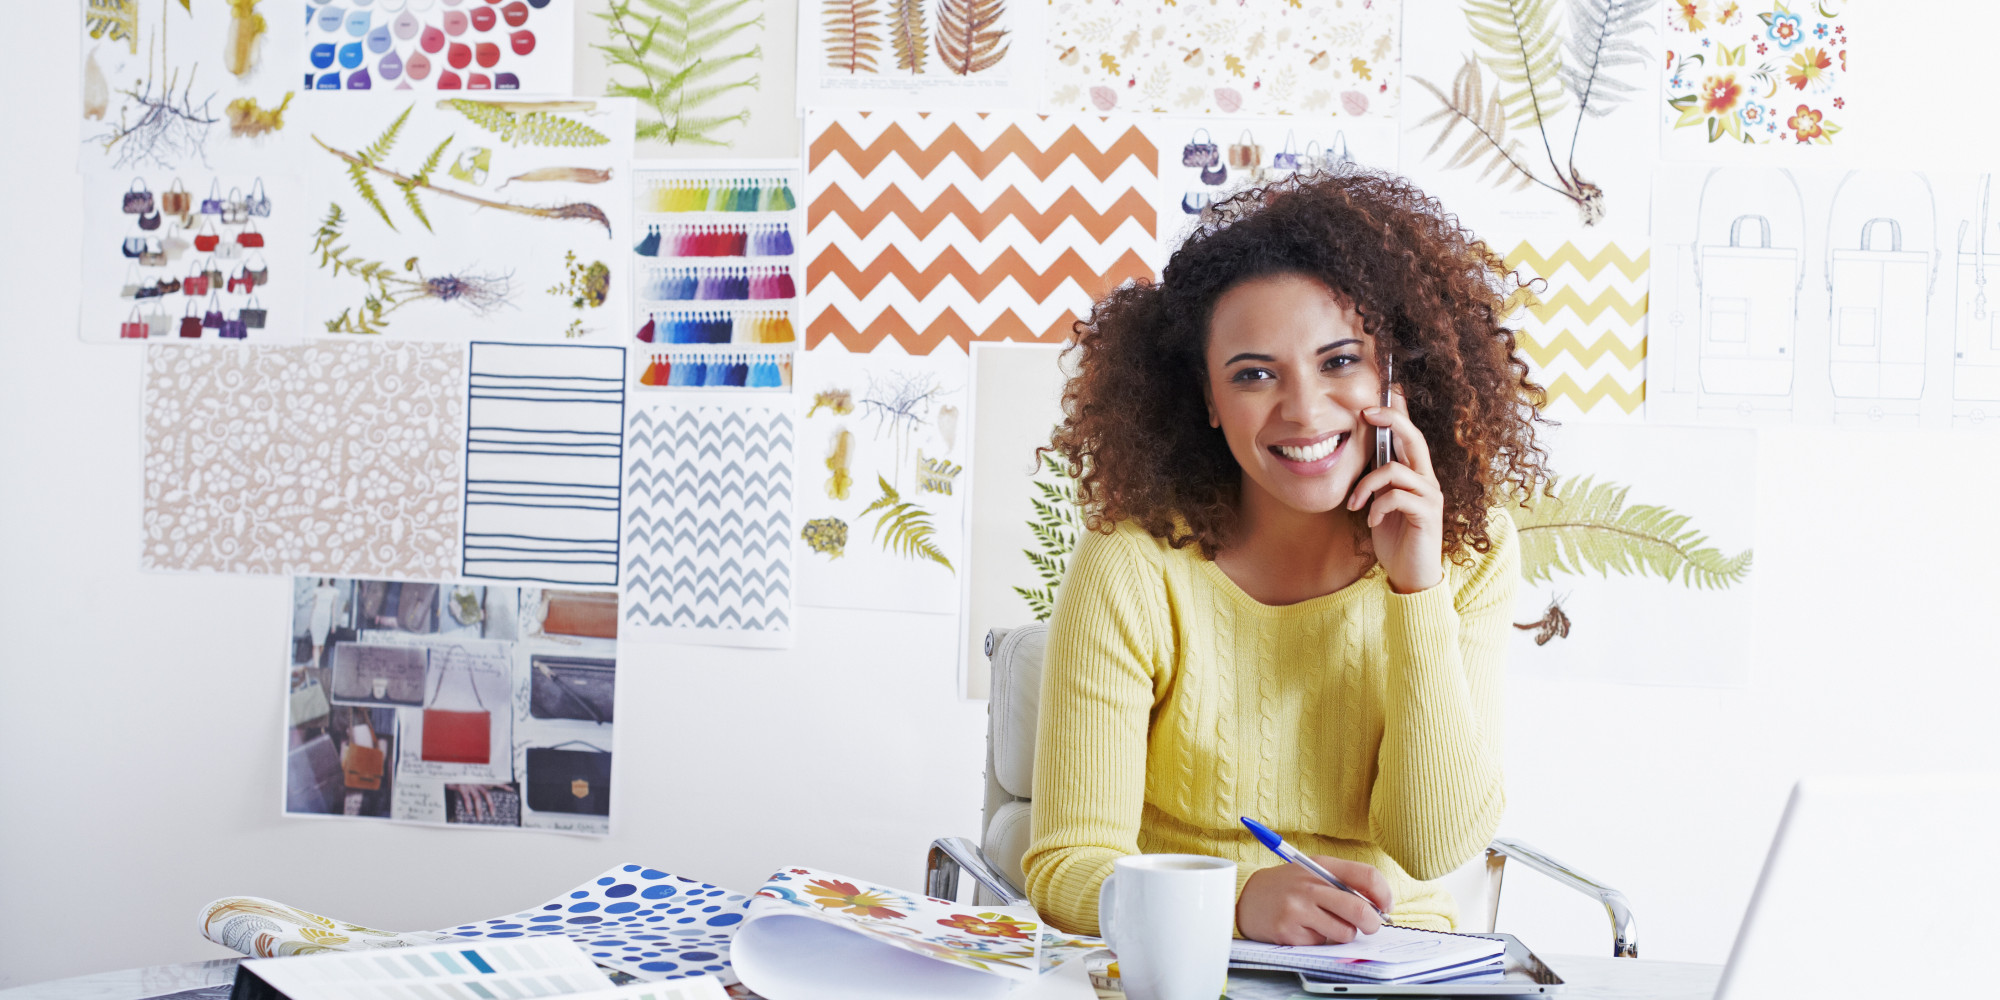 Working In Home Office 5 tips for working from home | huffpost